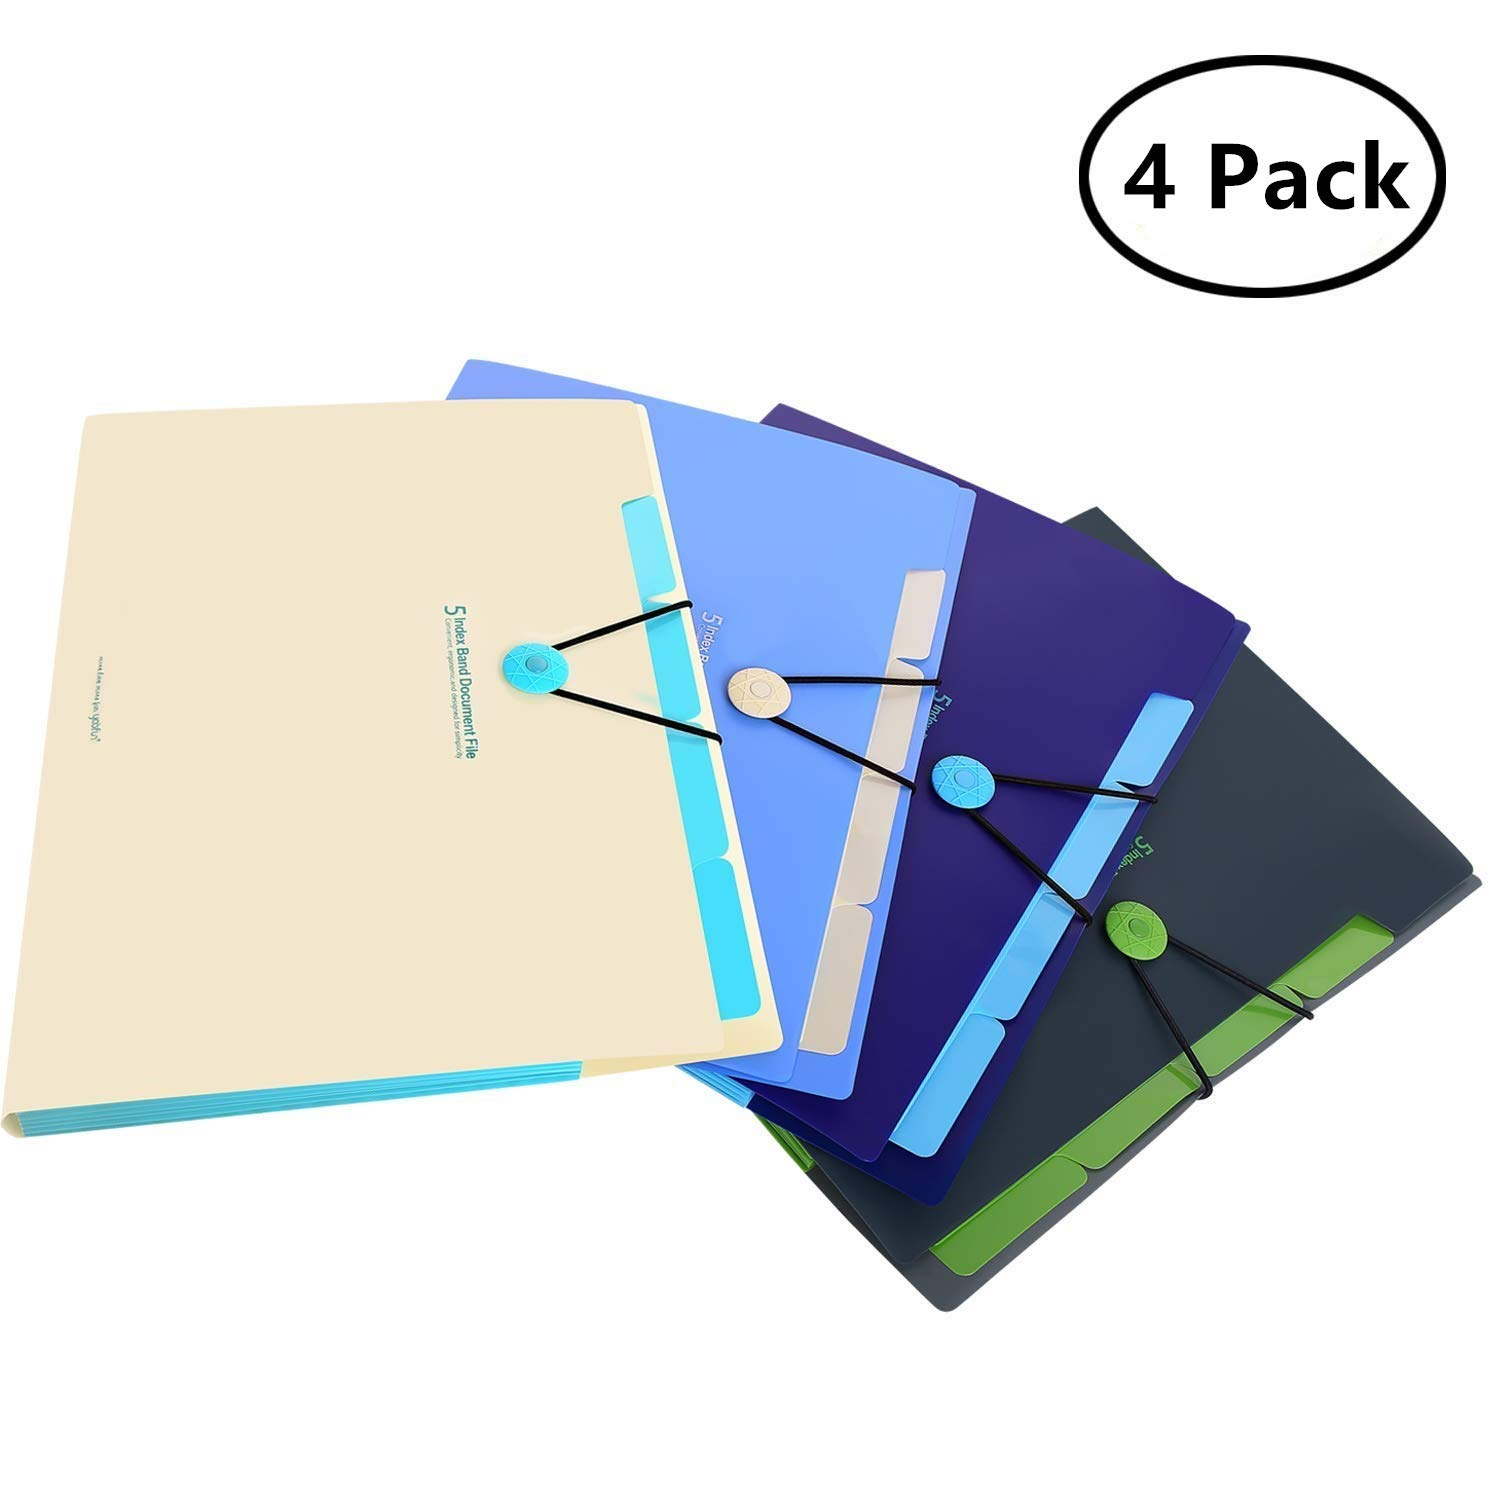 Skydue Expanding File Folders 5 Pockets Letter A4 Accordion Document Paper Organizer, Pack of 4